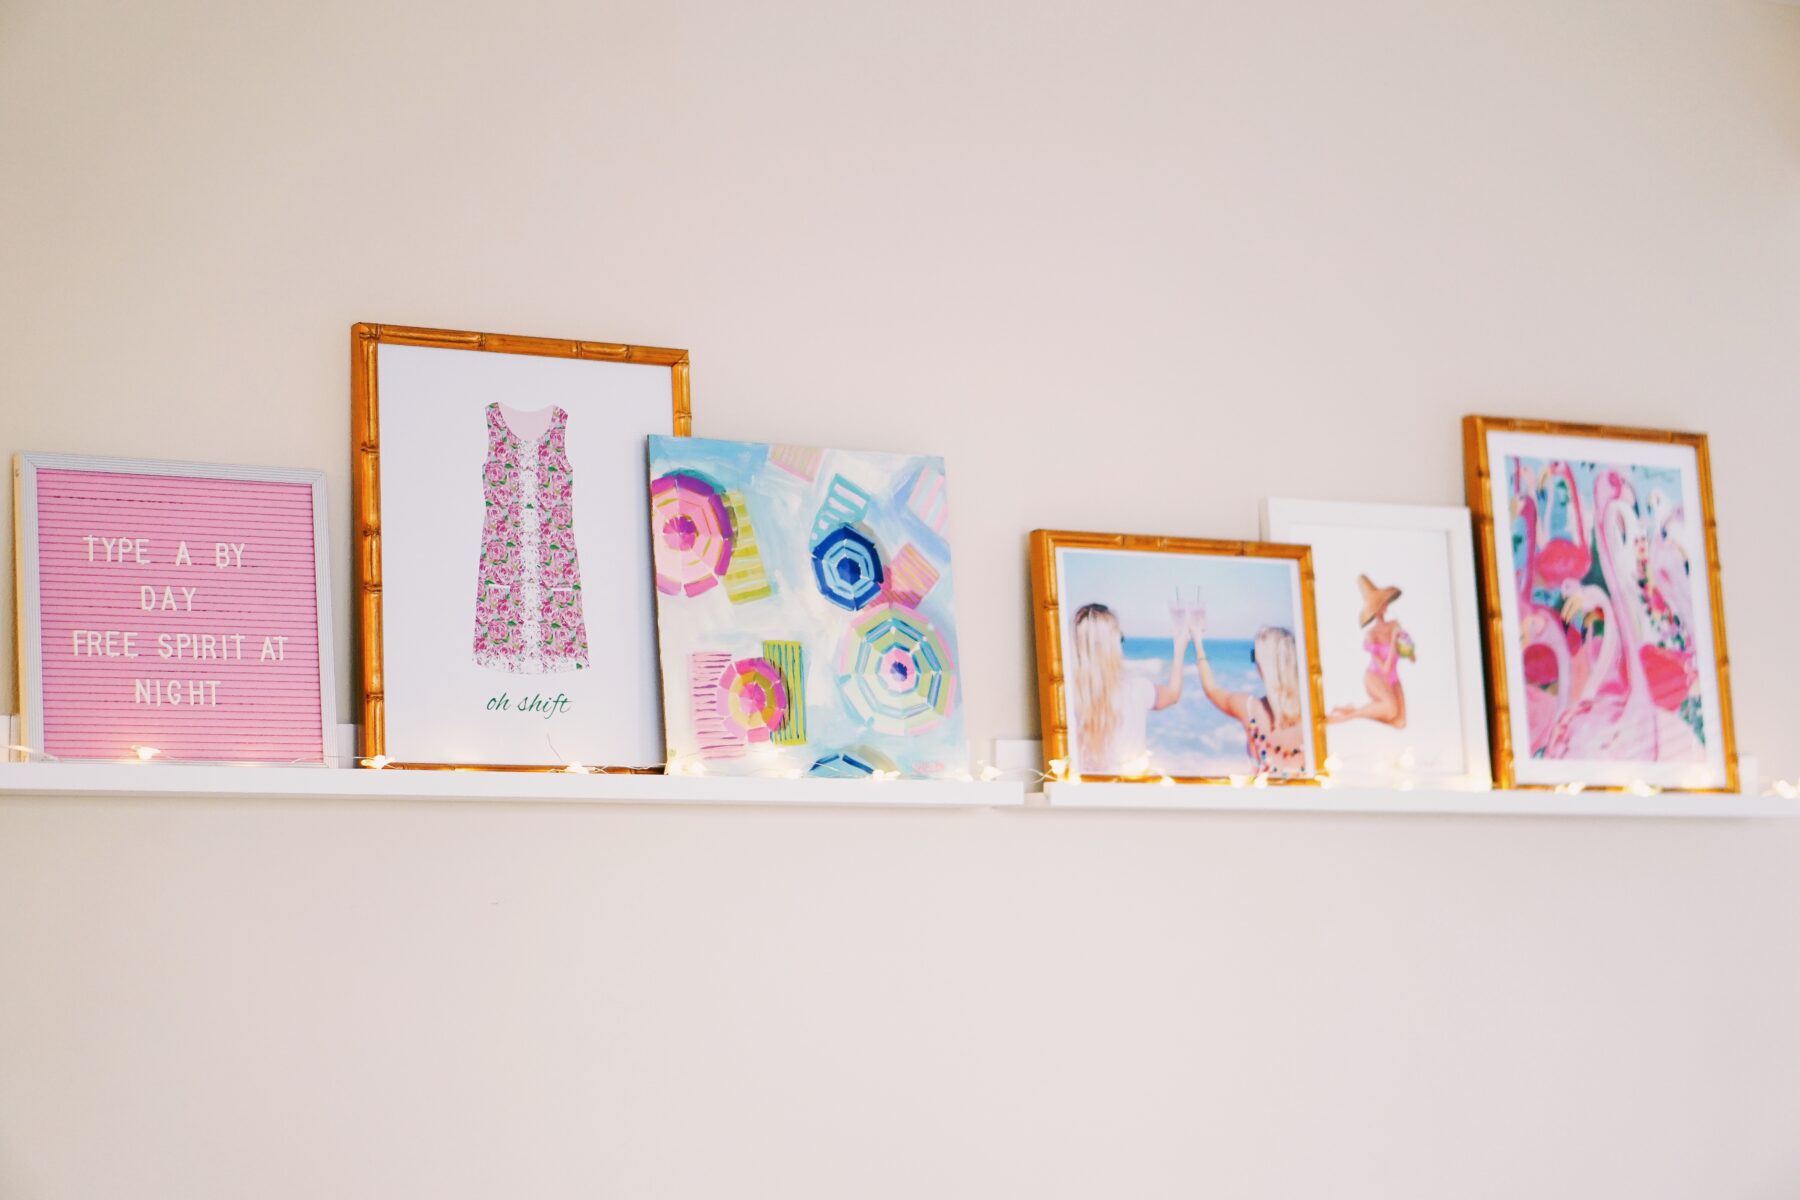 Floating shelves with colorful prints